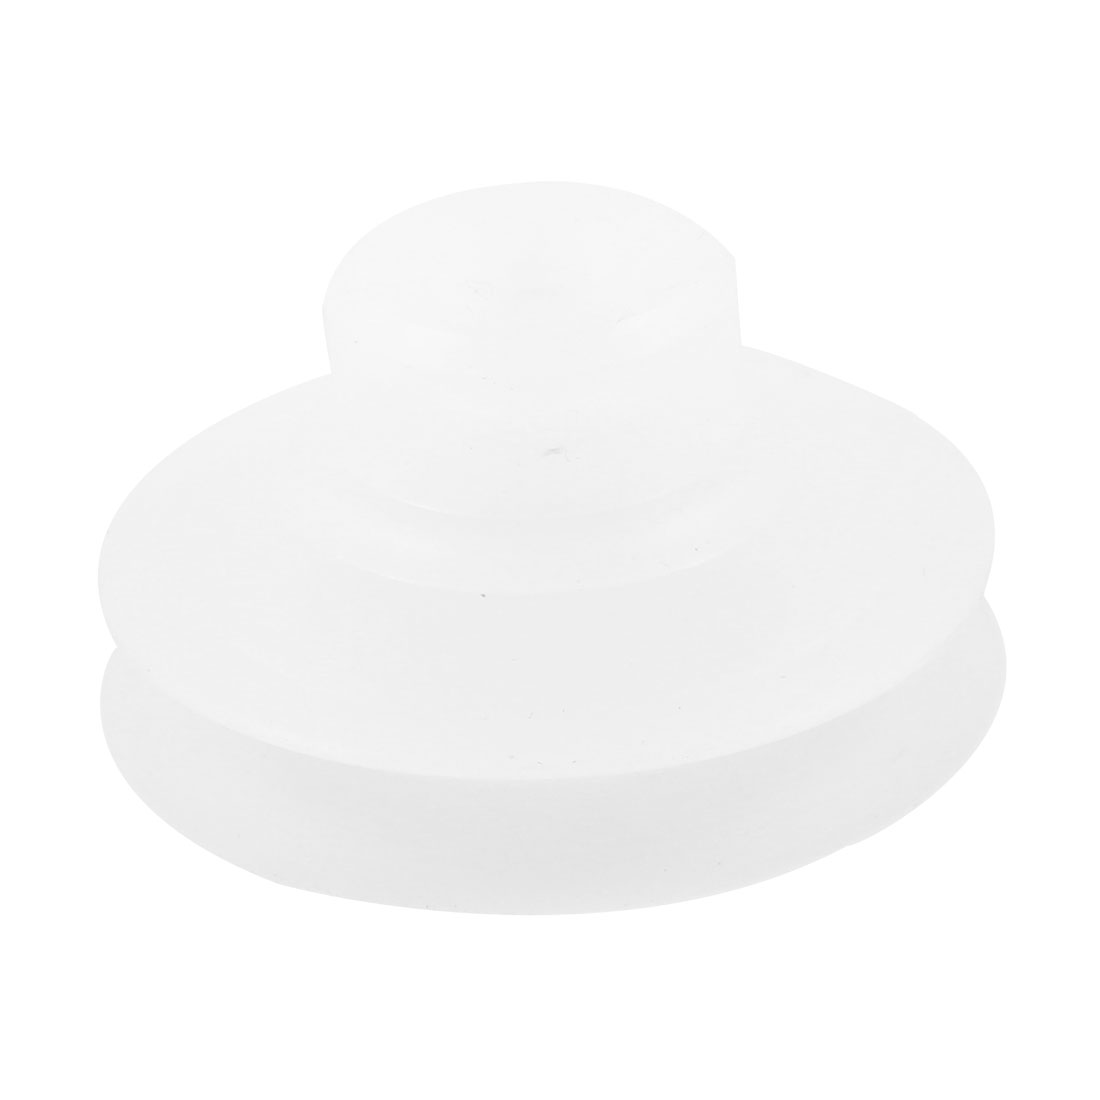 "2"" x 1"" Replacement Soft Silicone Vacuum Suction Cup Filter"